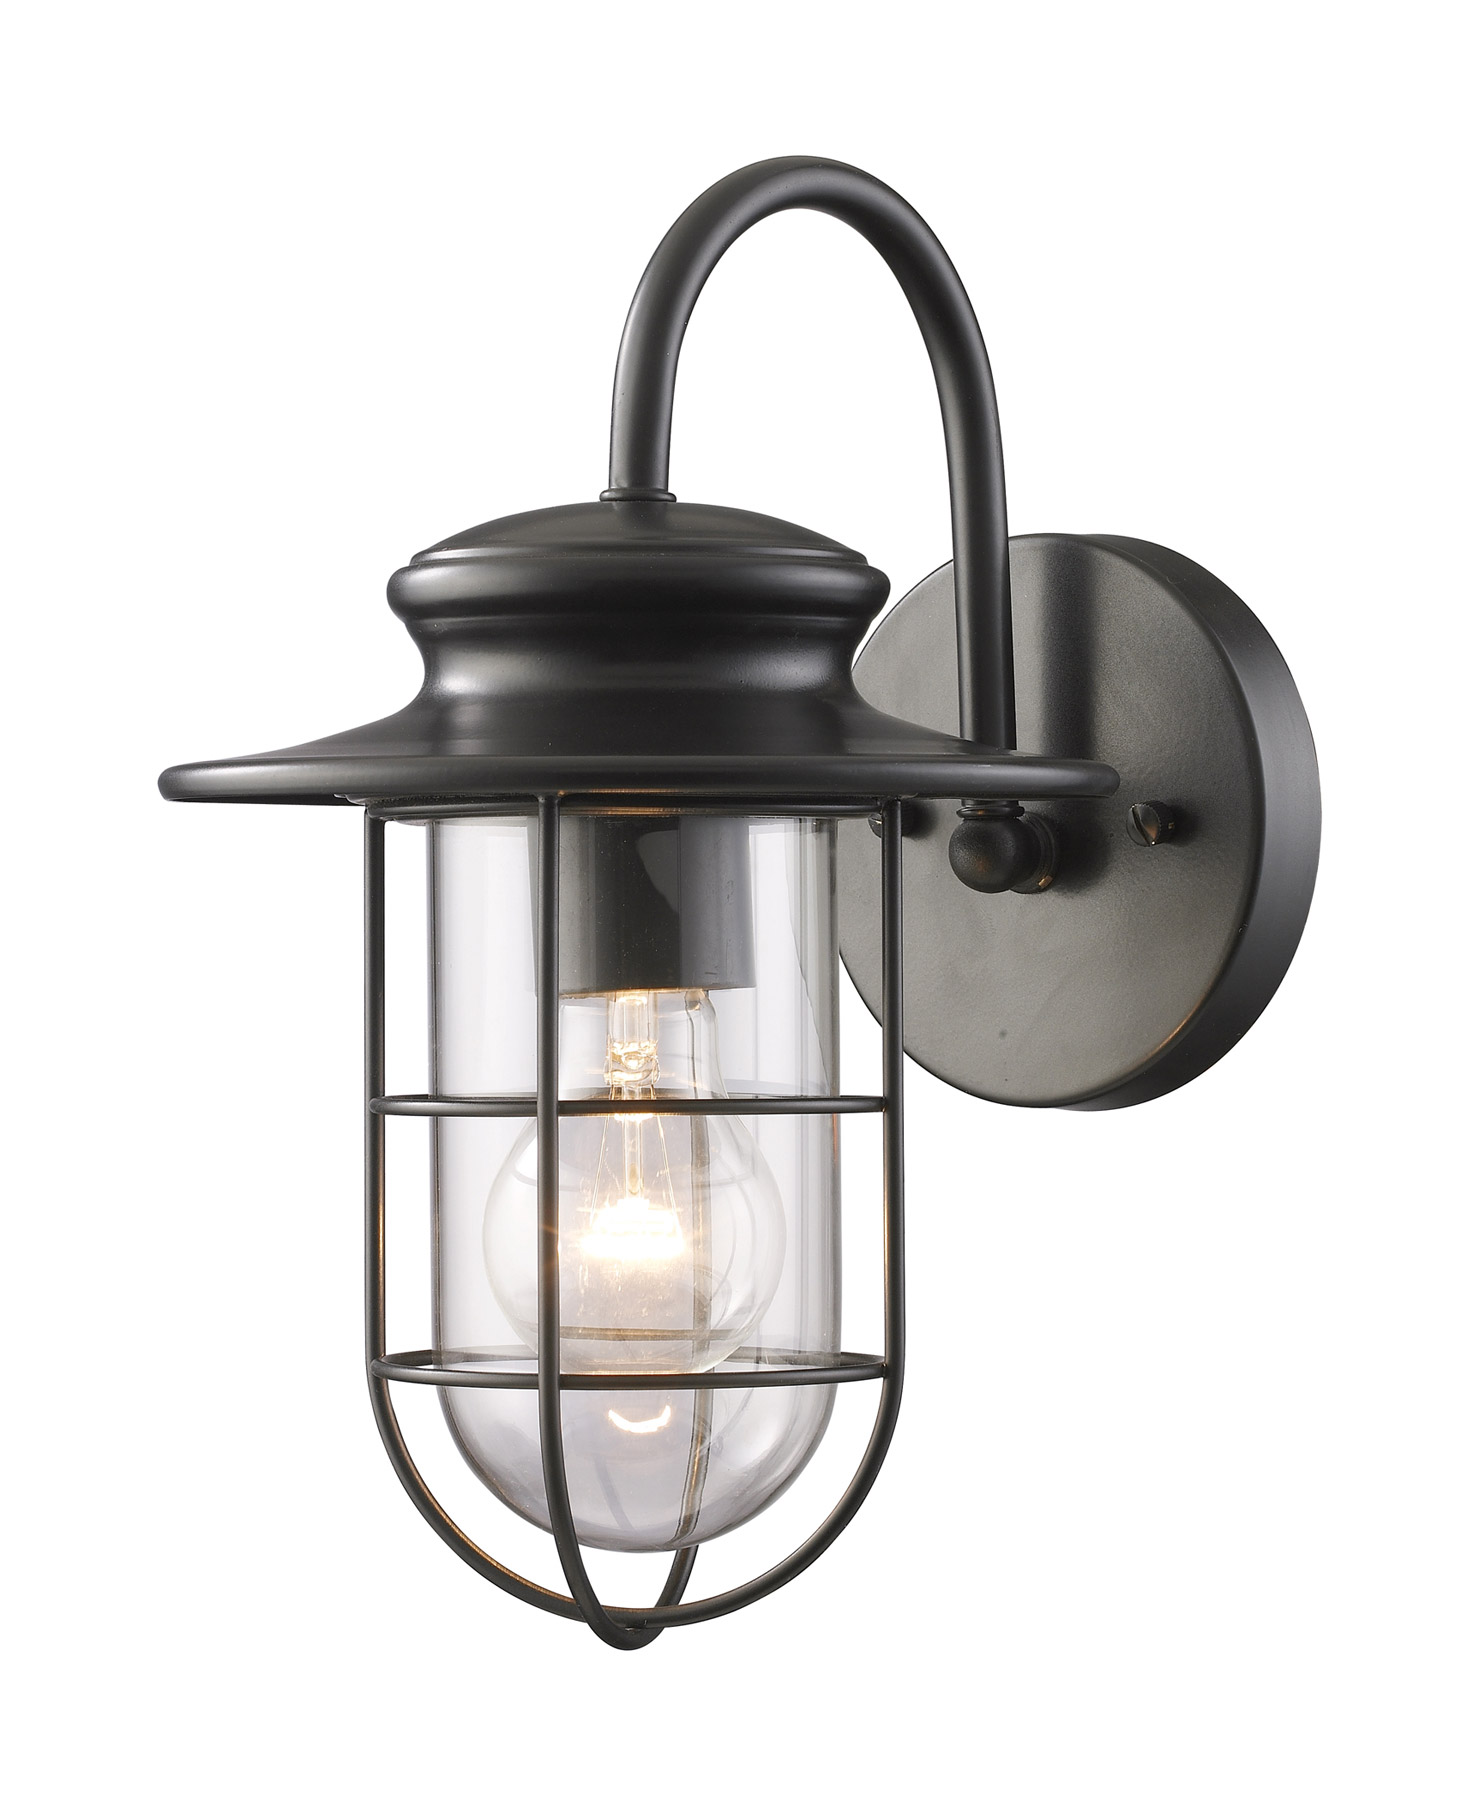 Elk lighting 42284 1 portside outdoor wall mount lantern for Industrial outdoor lighting